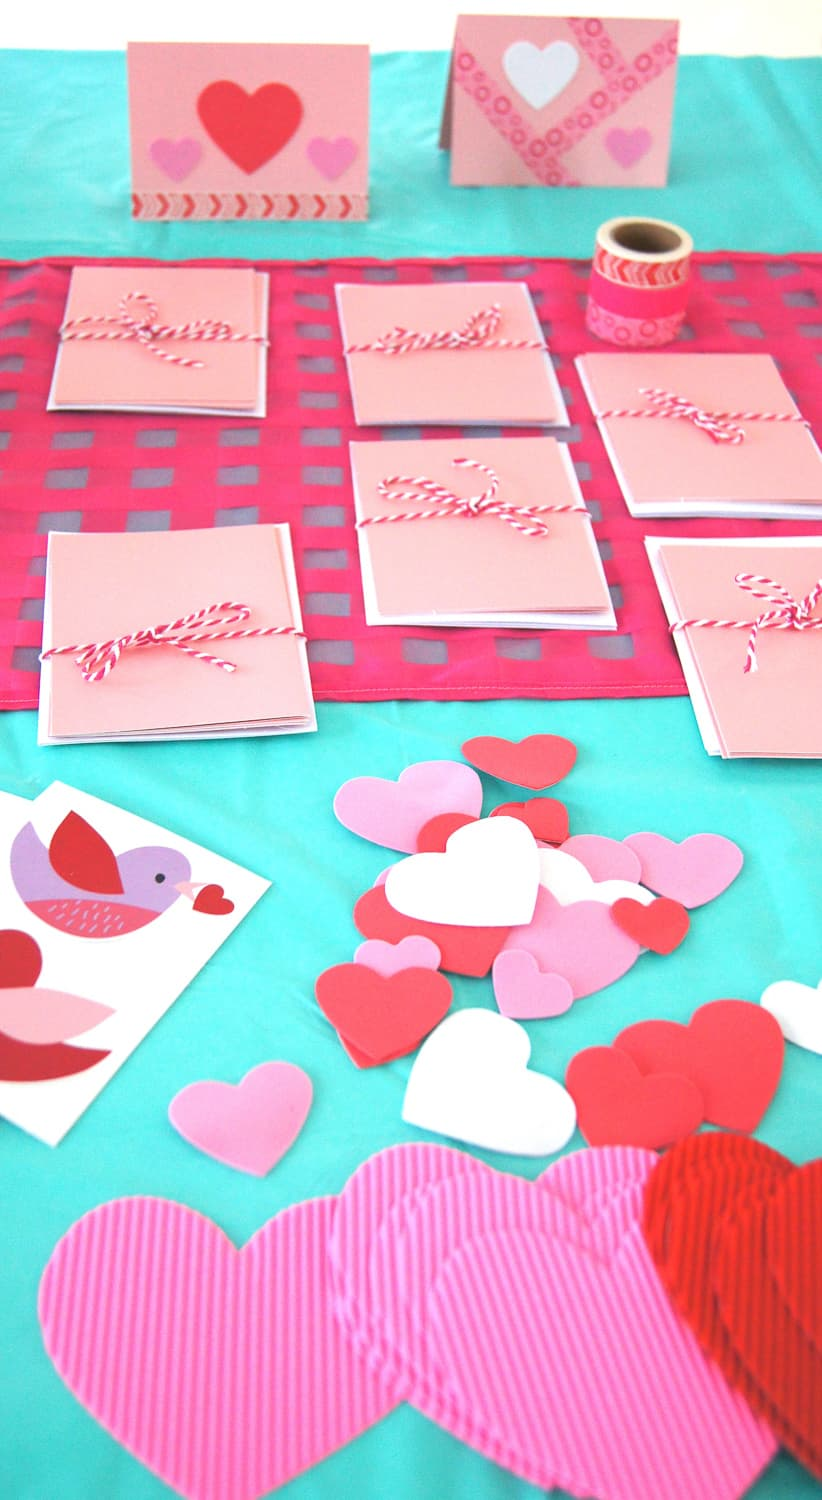 Supplies to create Valentine's Day Cards